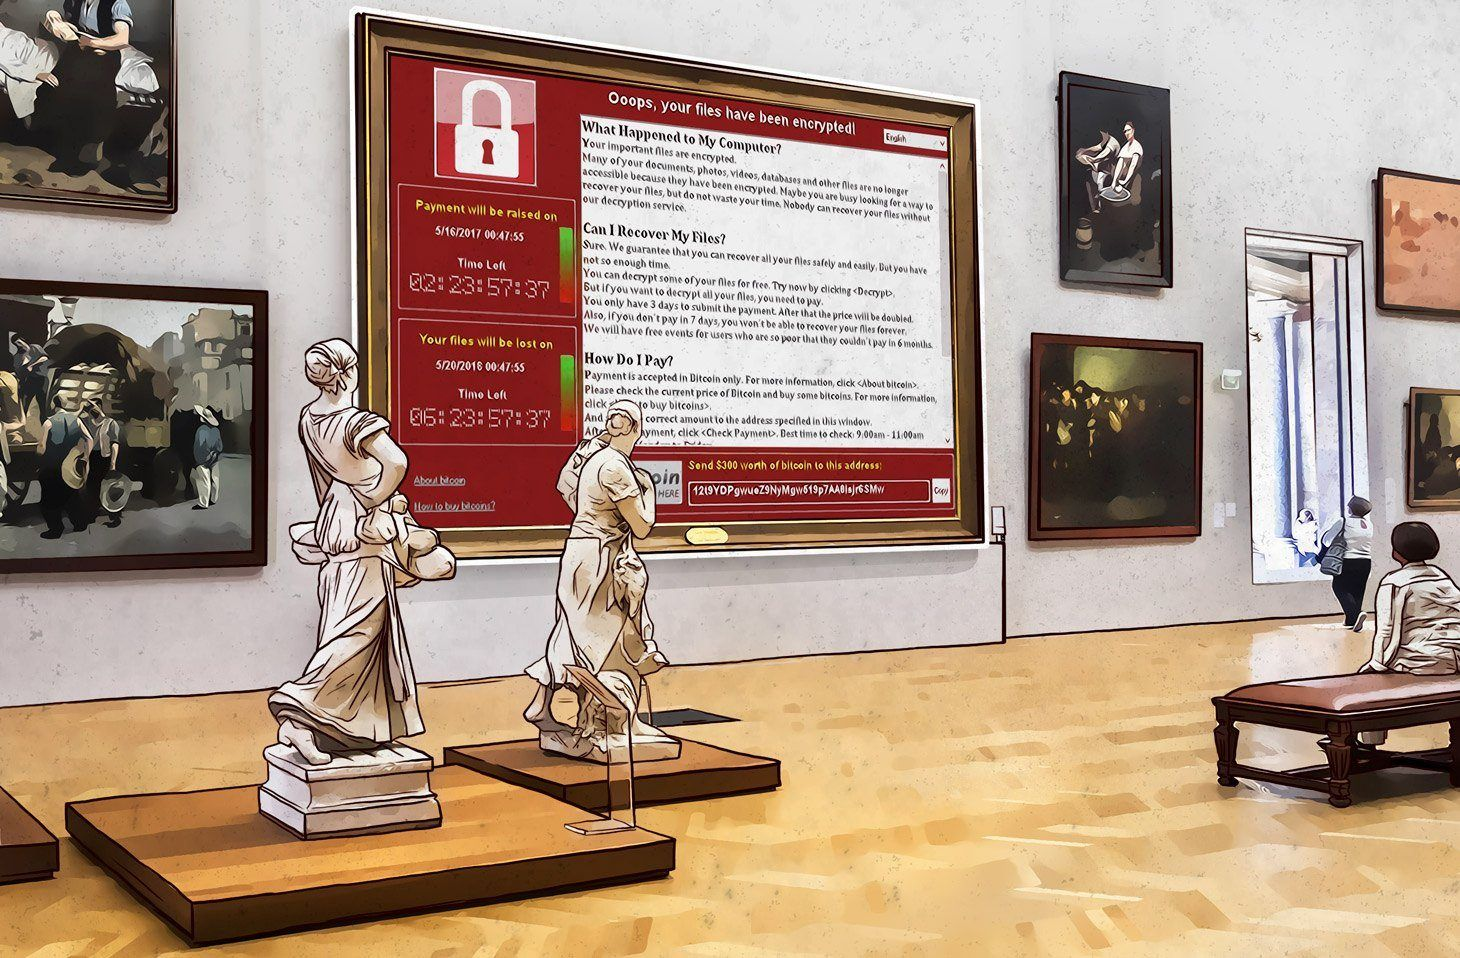 WannaCry was responsible for 30% of ransomware attacks in Q3 2018